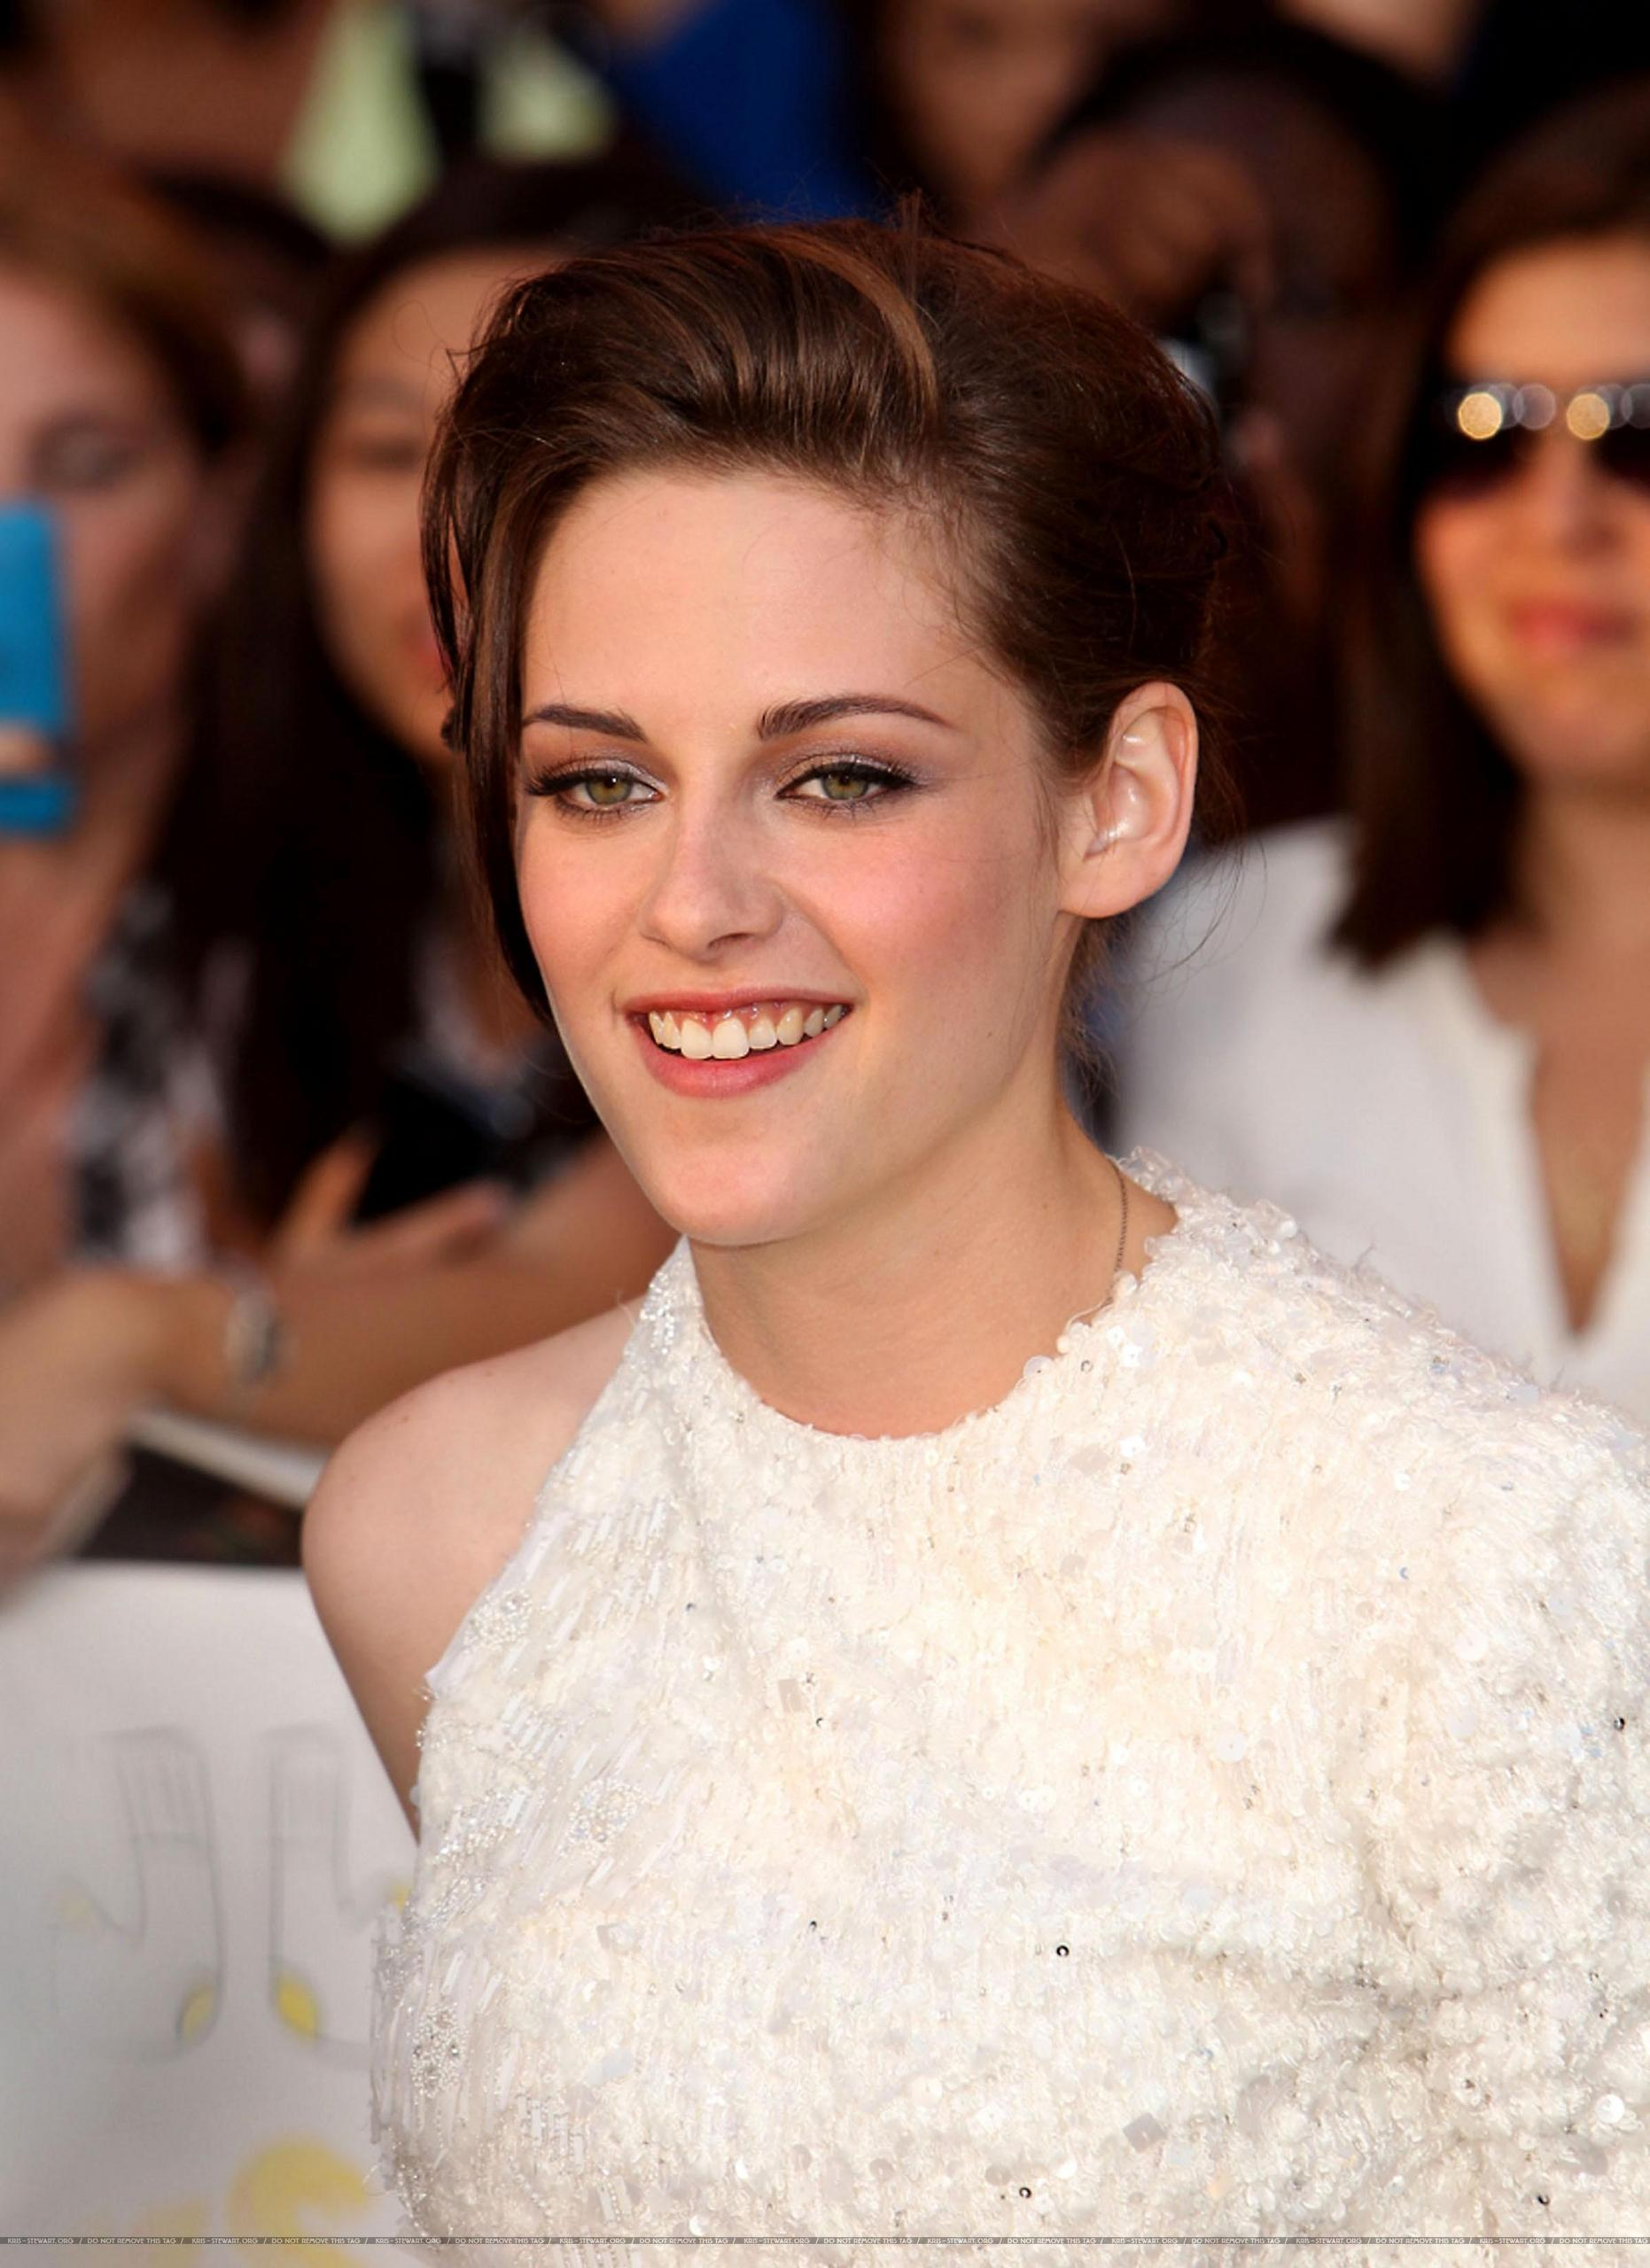 HQ: Kristen attends a screening for On the Road in New